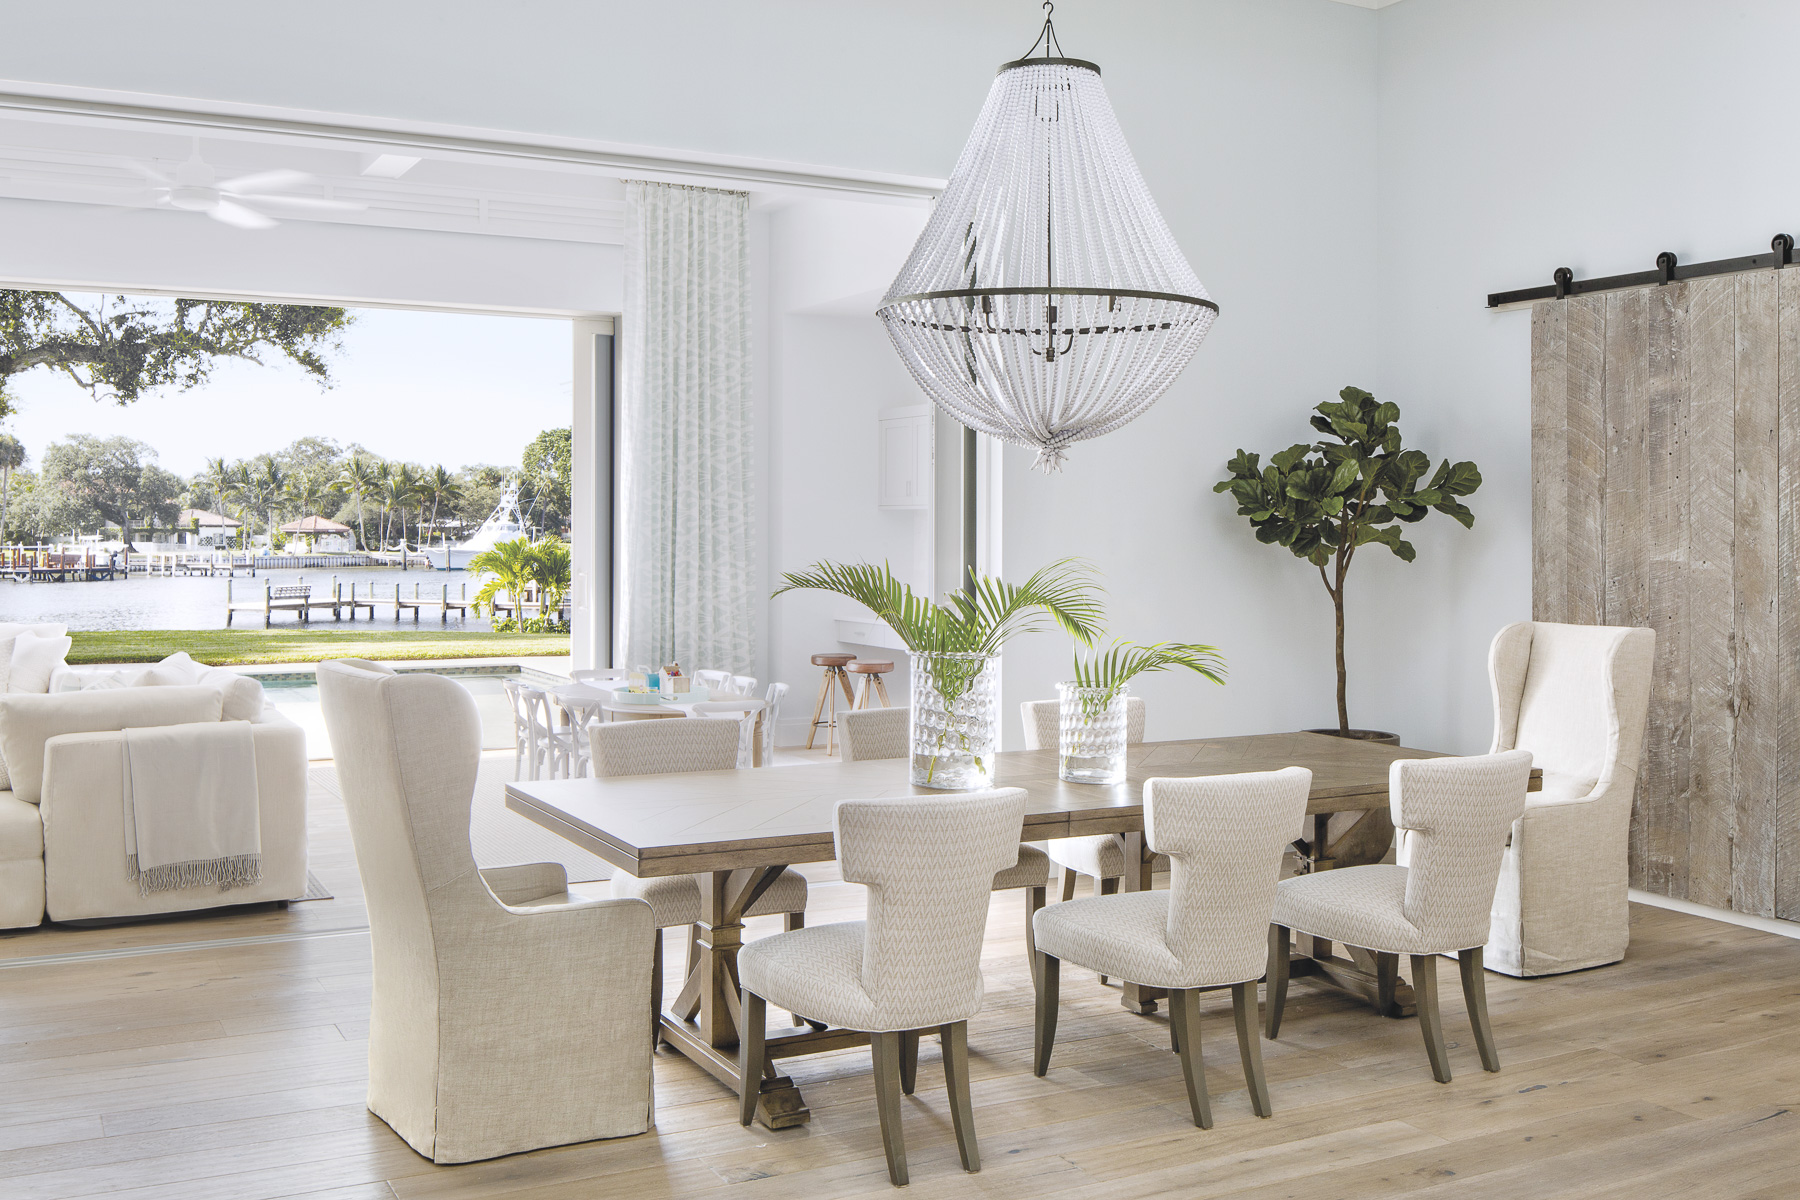 Home Tour-A Luxurious Beach Bungalow on the Intercoastal Waterway 5.jpg